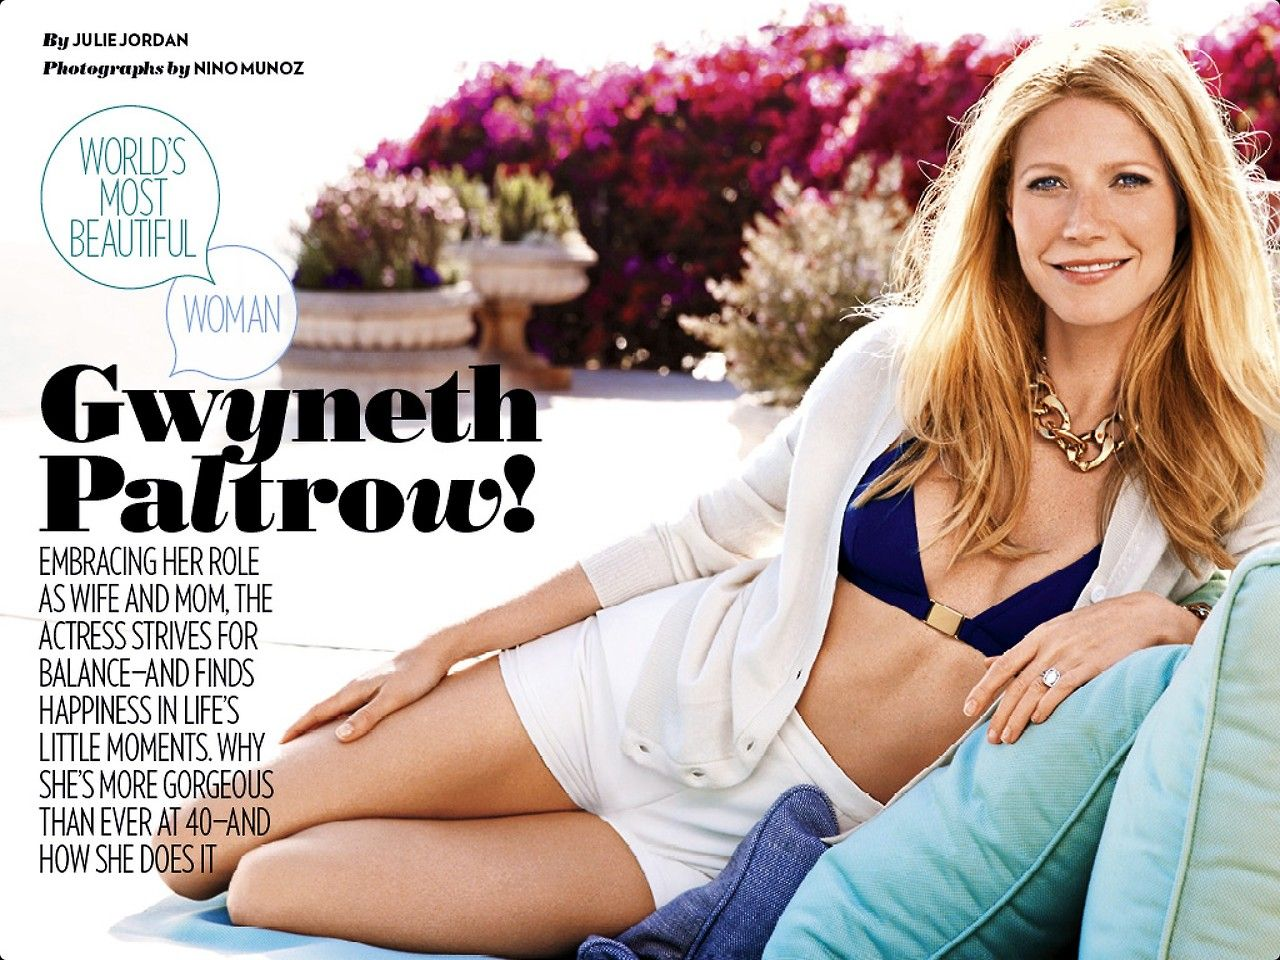 Gwyneth Paltrow People Magazine 2013 08 GotCeleb